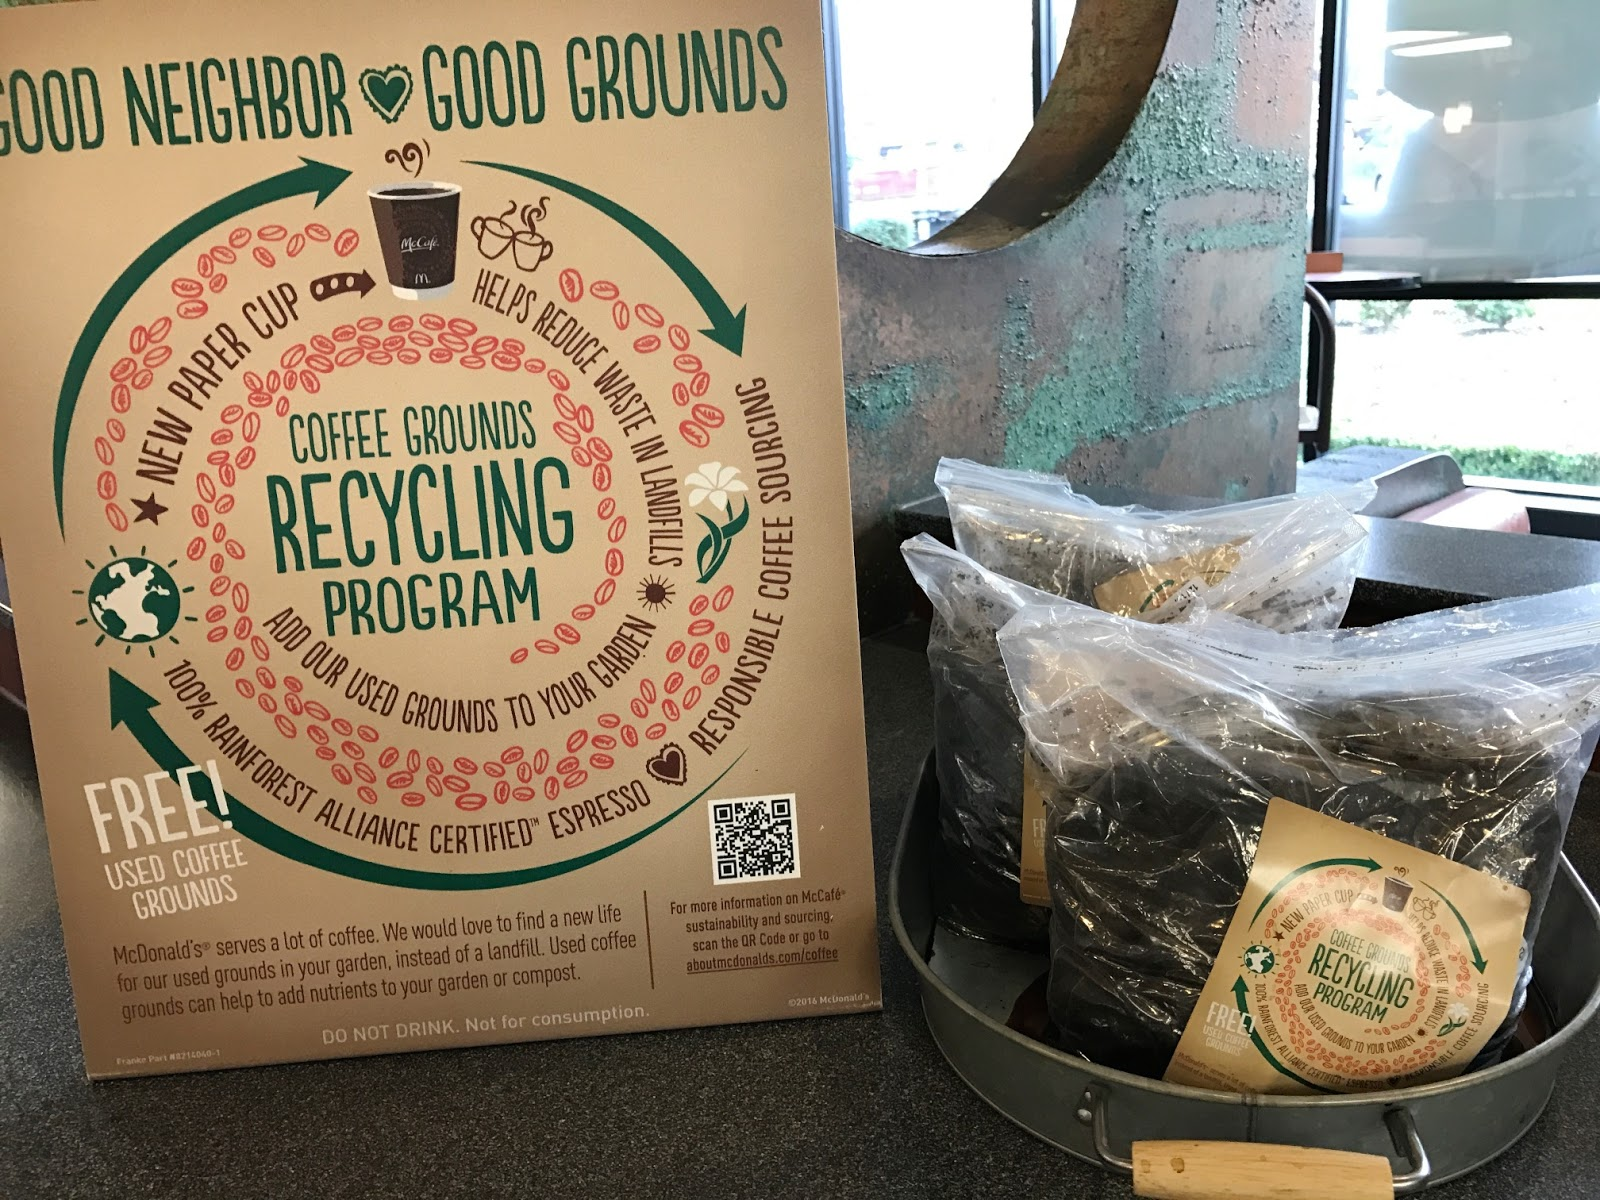 mcdonalds coffee grounds recycling